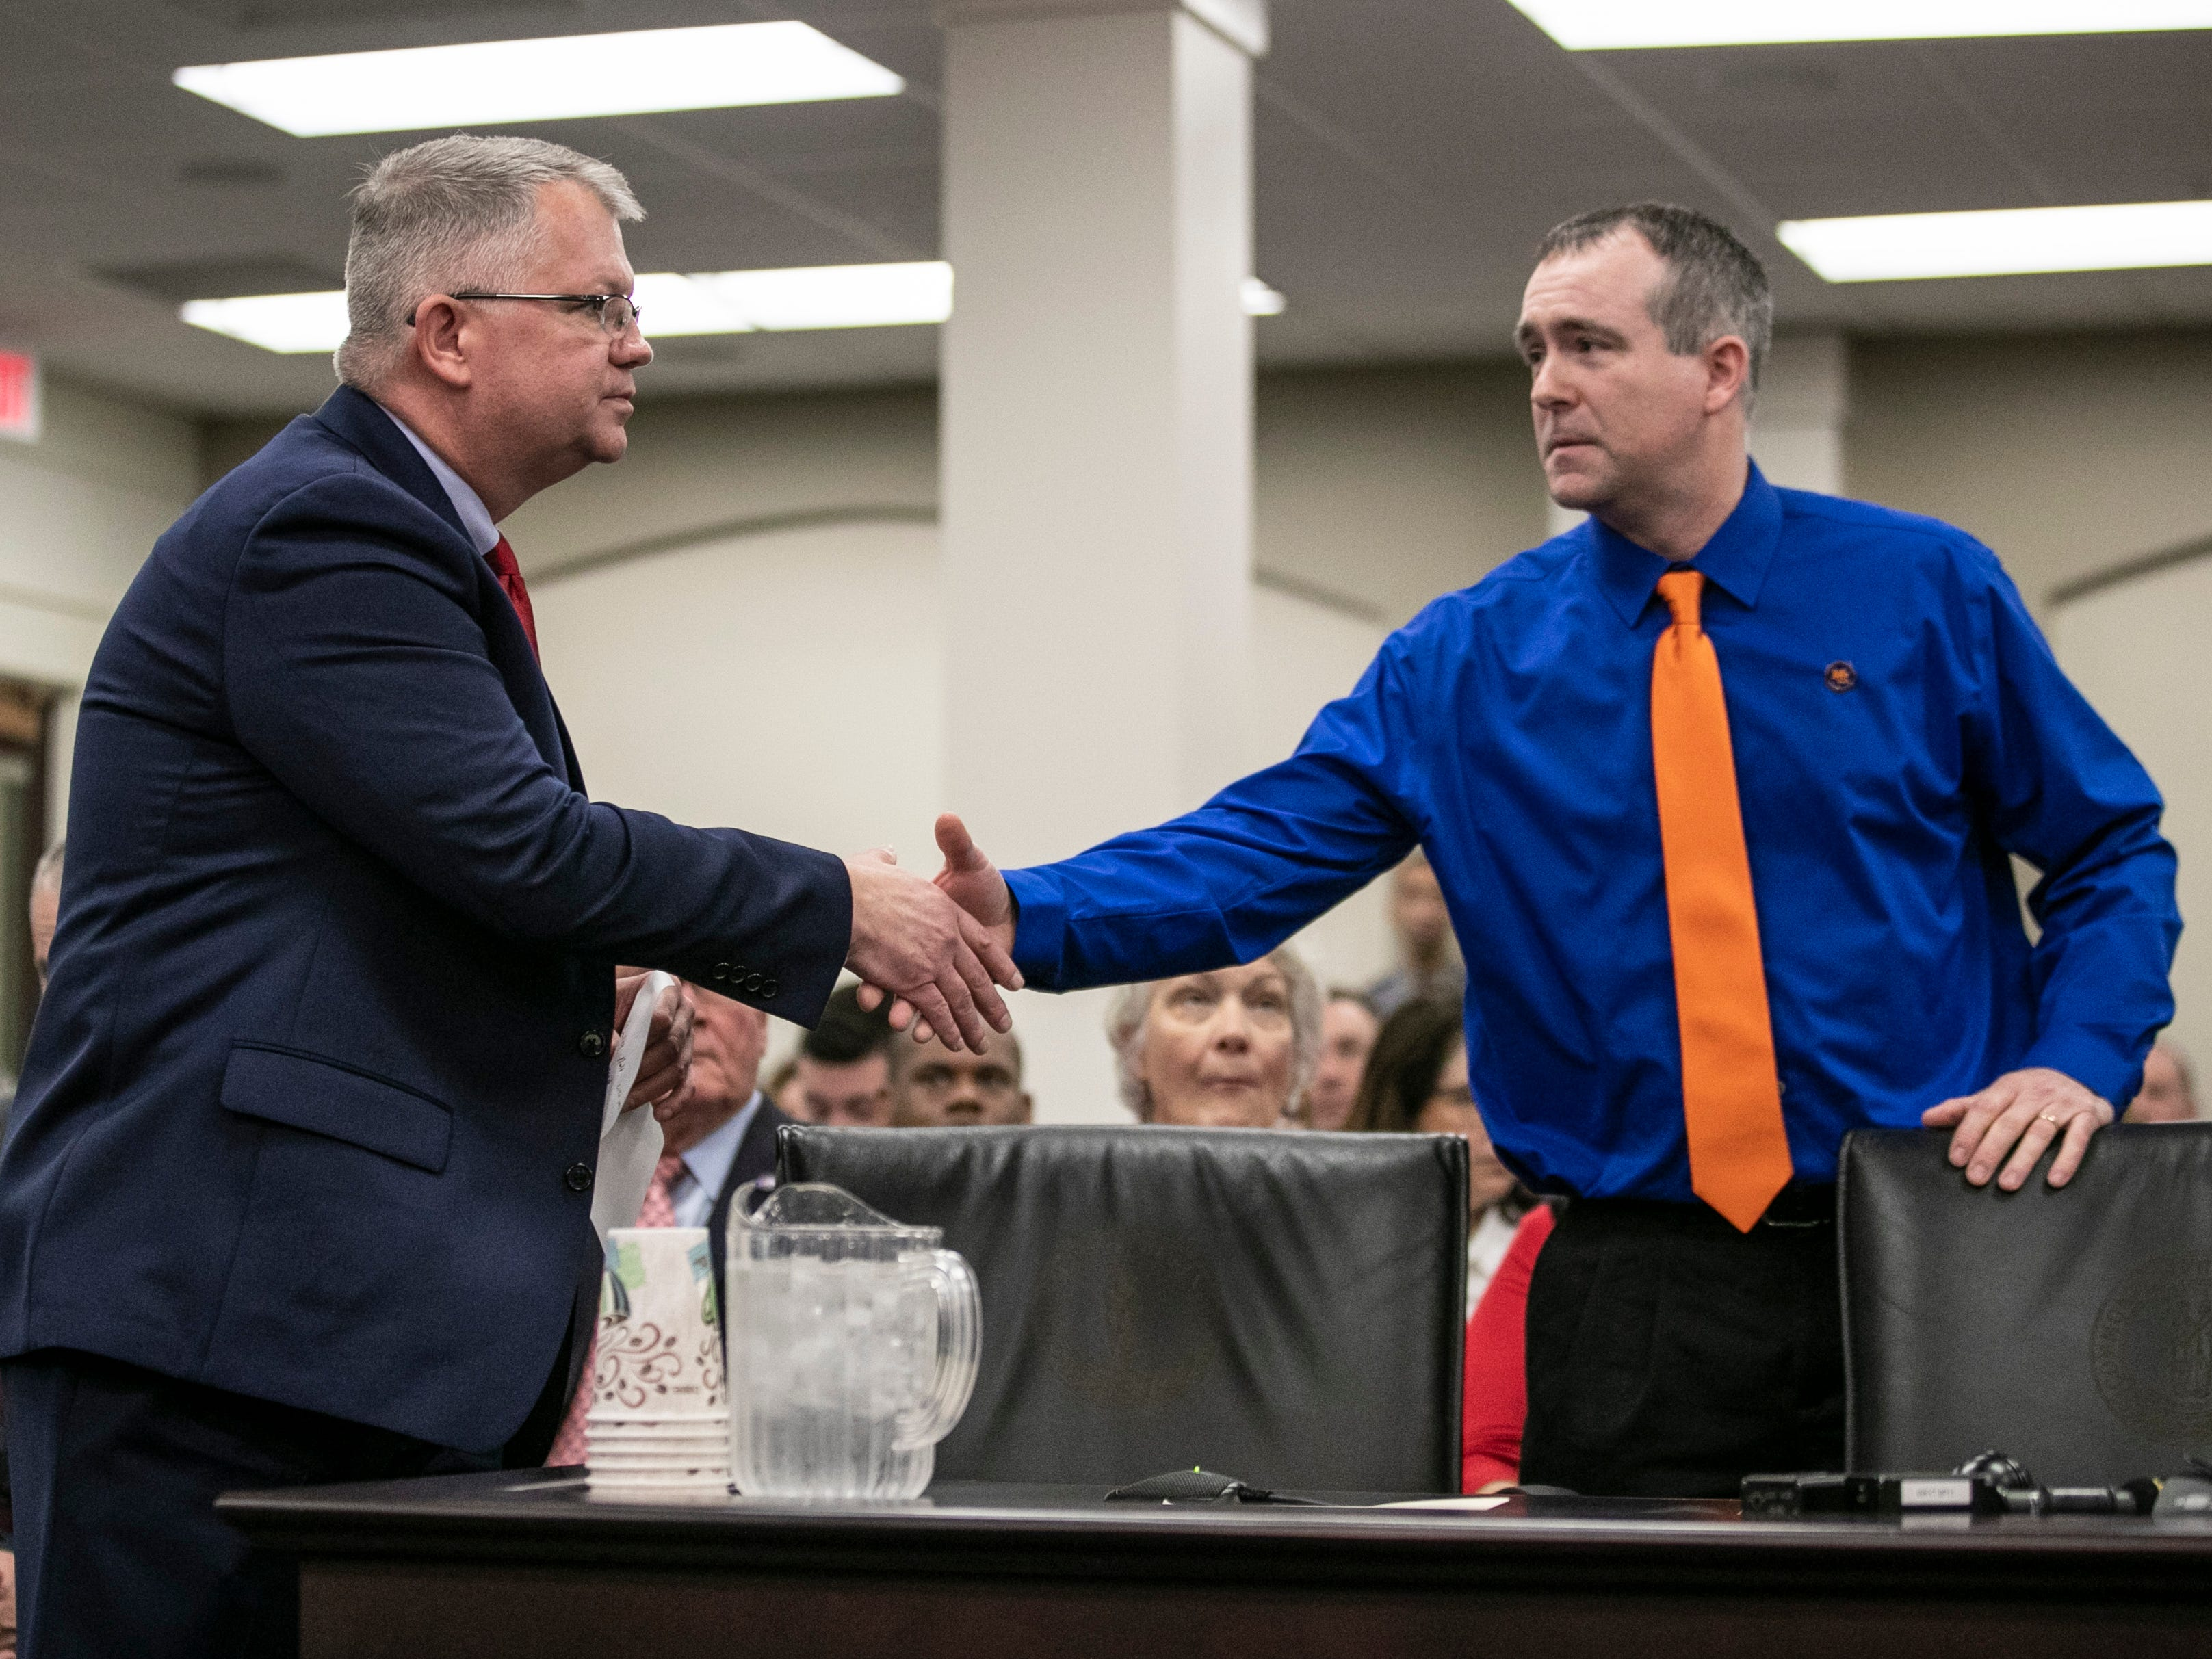 Kentucky Senator Danny Carroll shakes the hand of Brian Cope before a hearing on SB 1 Thursday in Frankfort. Their son Preston Cope was one of two teenagers killed in the Marshall County High School shooting in 2018. Brian Cope would urge lawmakers to pass a school safety bill; his son Preston Cope was one of two teenagers killed during the Marshall County  High School Shooting in 2018.